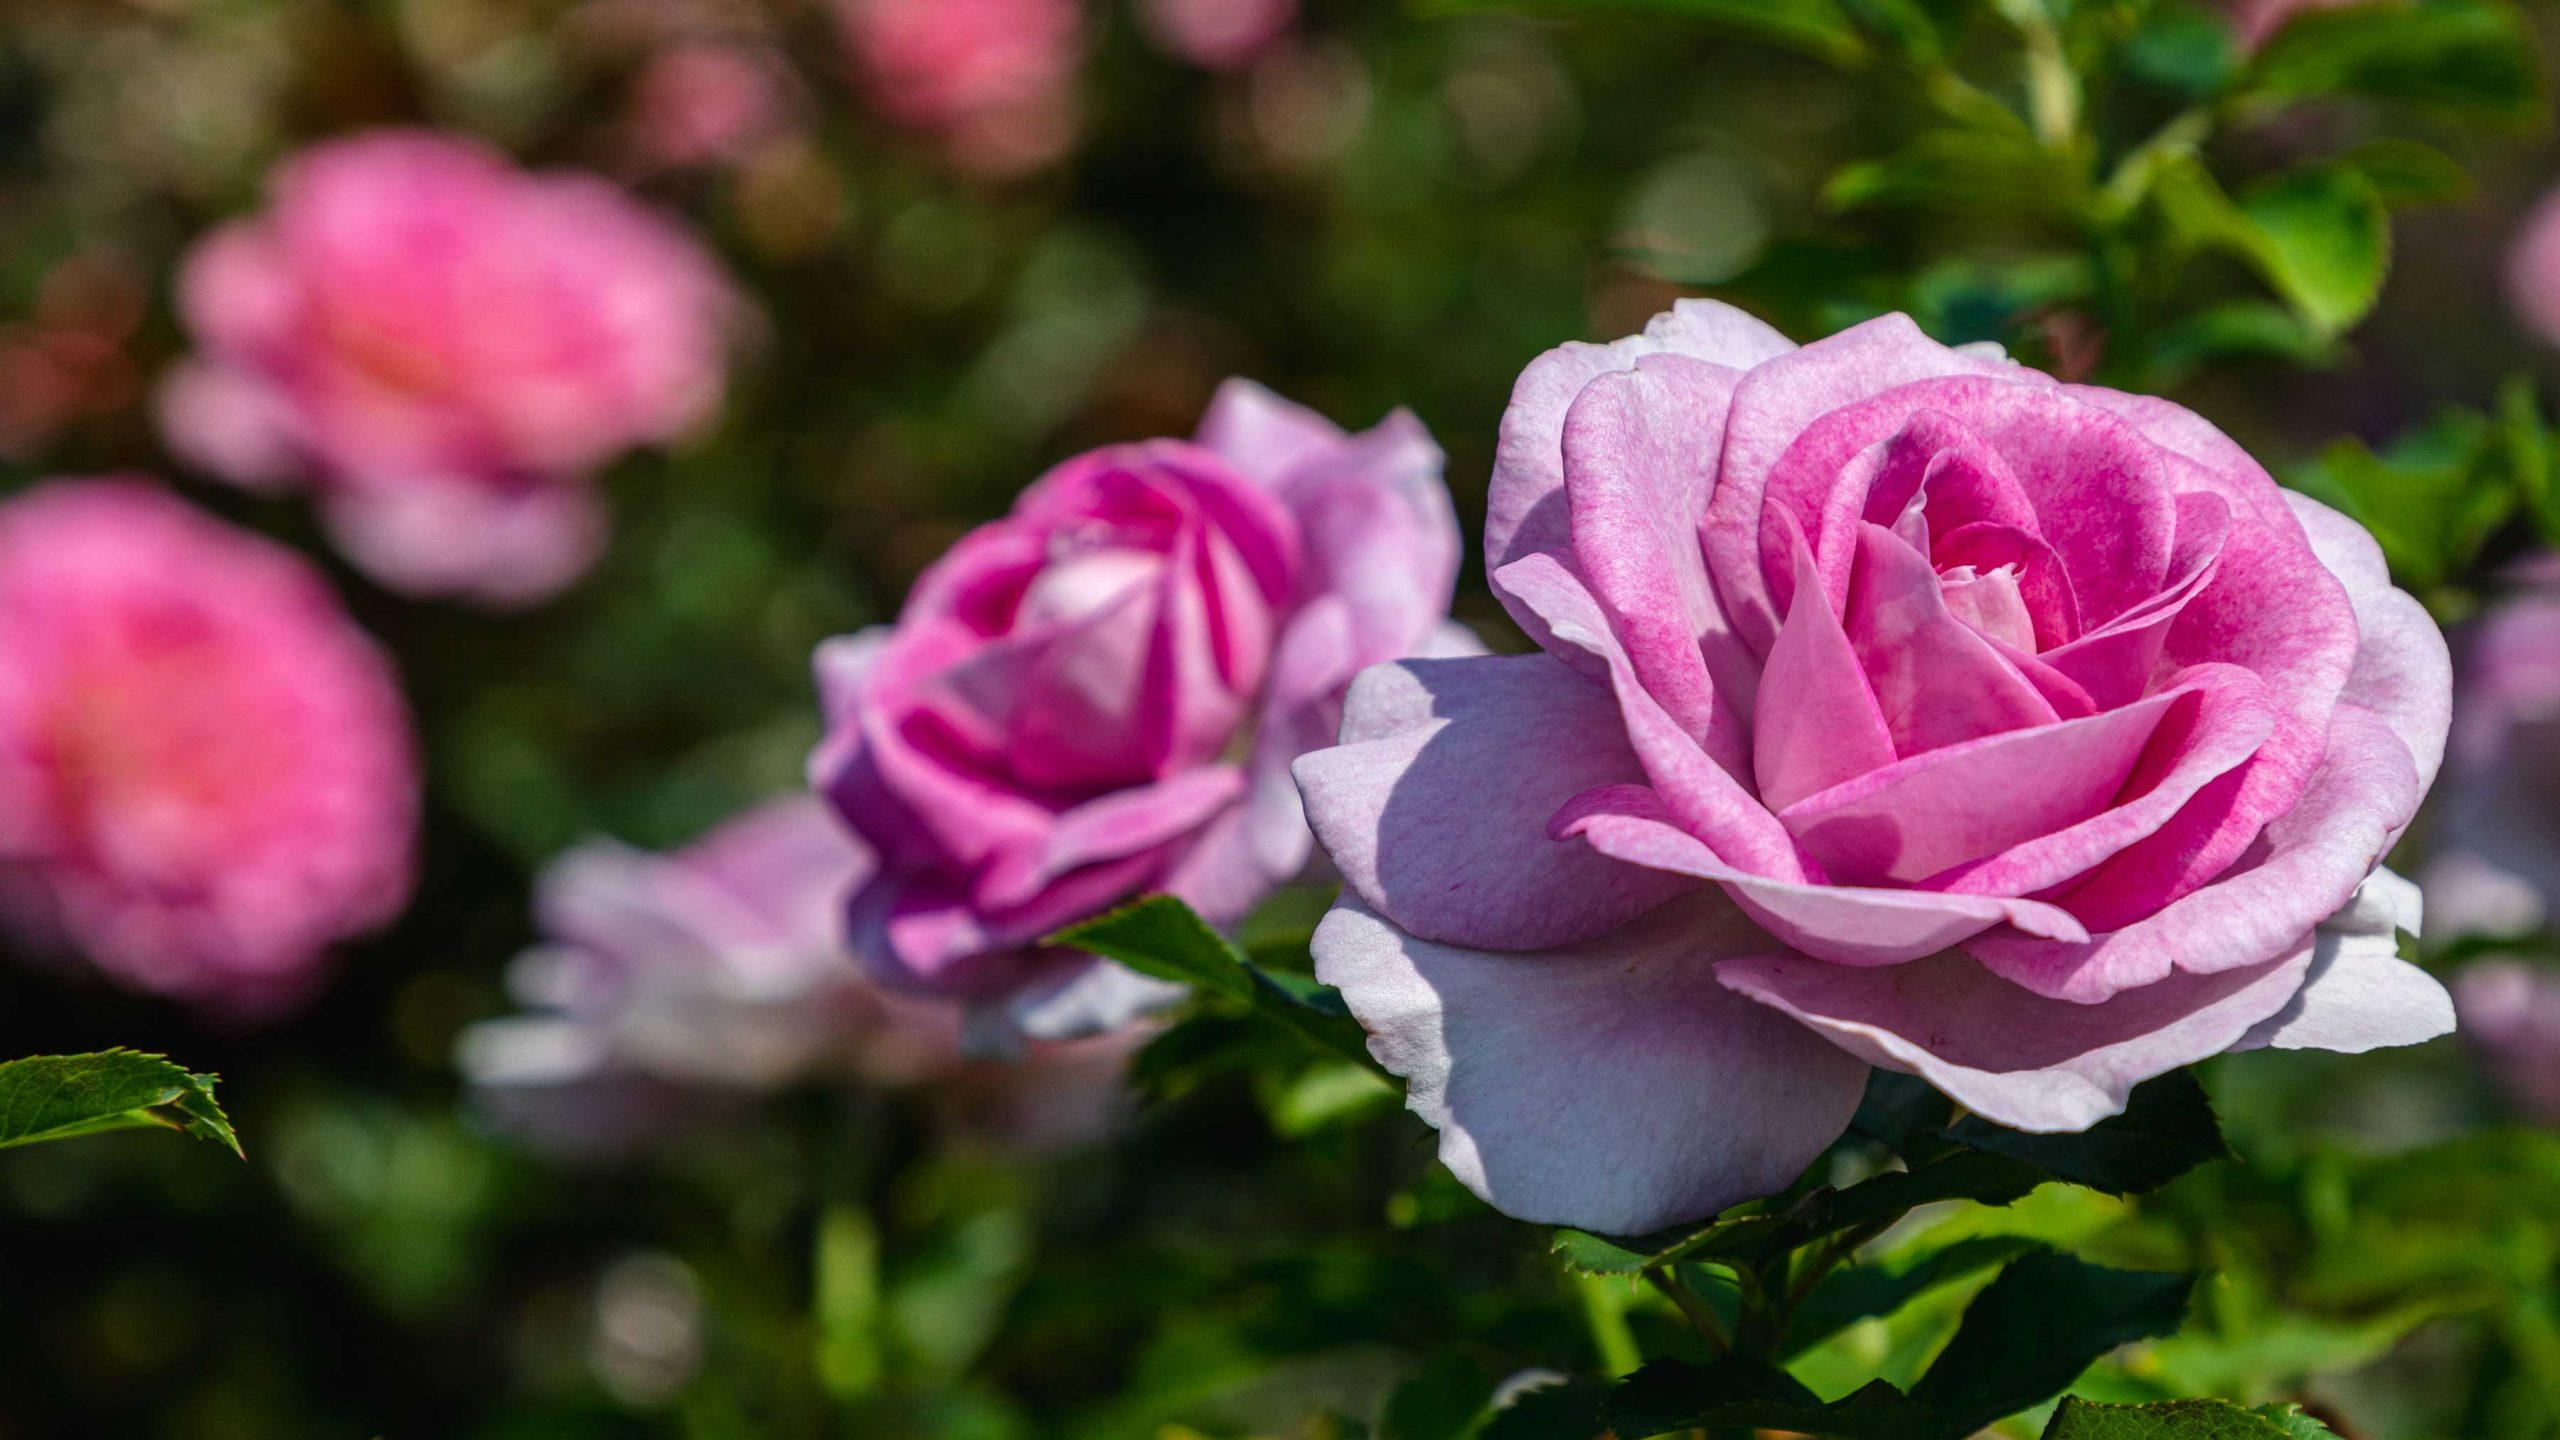 A pair of pink roses that fade almost to white at the petals' edges bloom brightly under the sun, with more flowers visible in the background